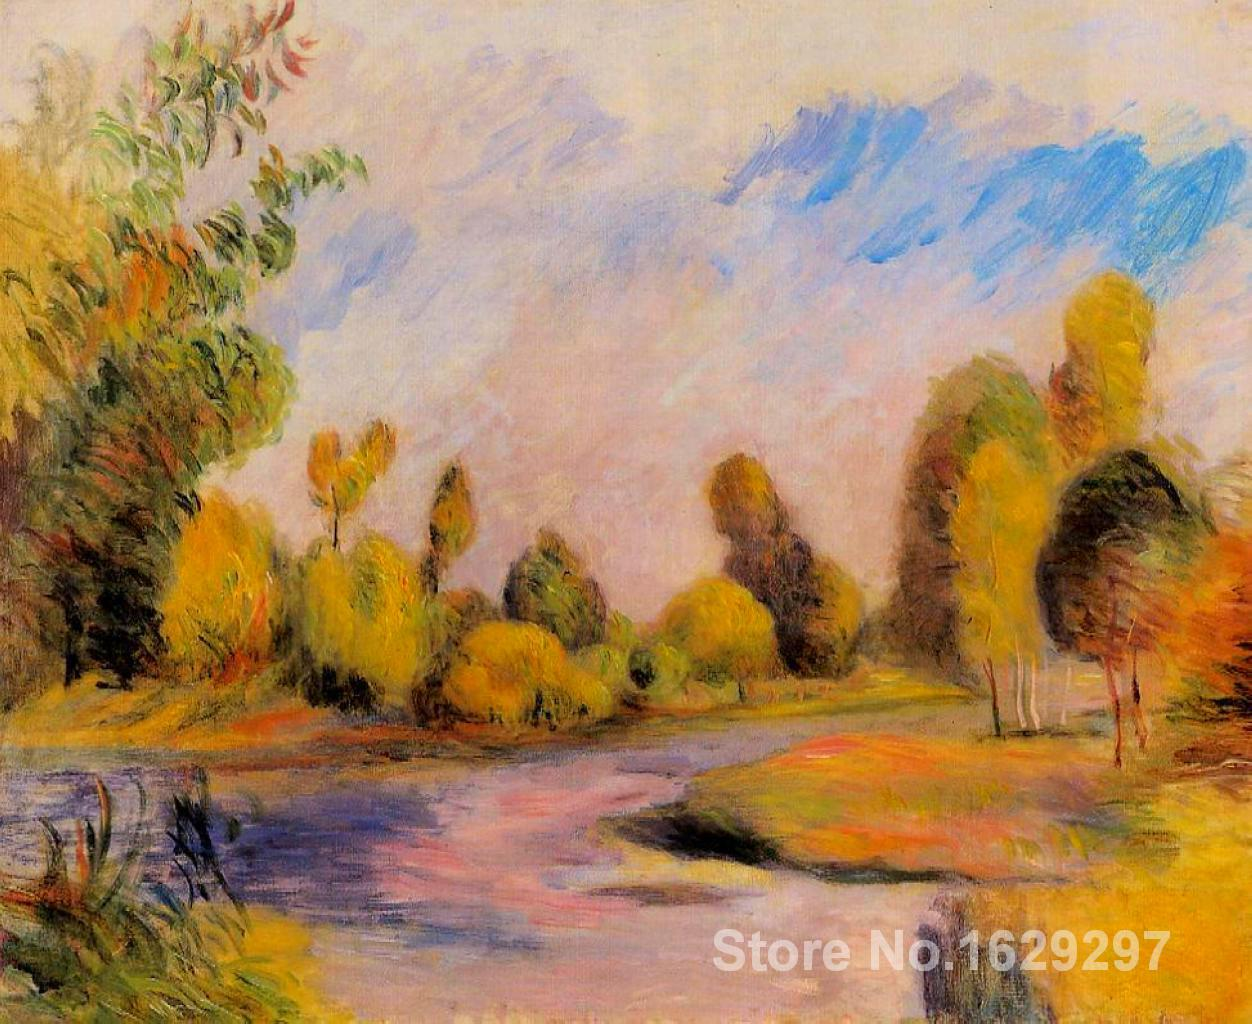 handmade oil painting Banks of a River Pierre Auguste Renoir art Reproduction High qualityhandmade oil painting Banks of a River Pierre Auguste Renoir art Reproduction High quality